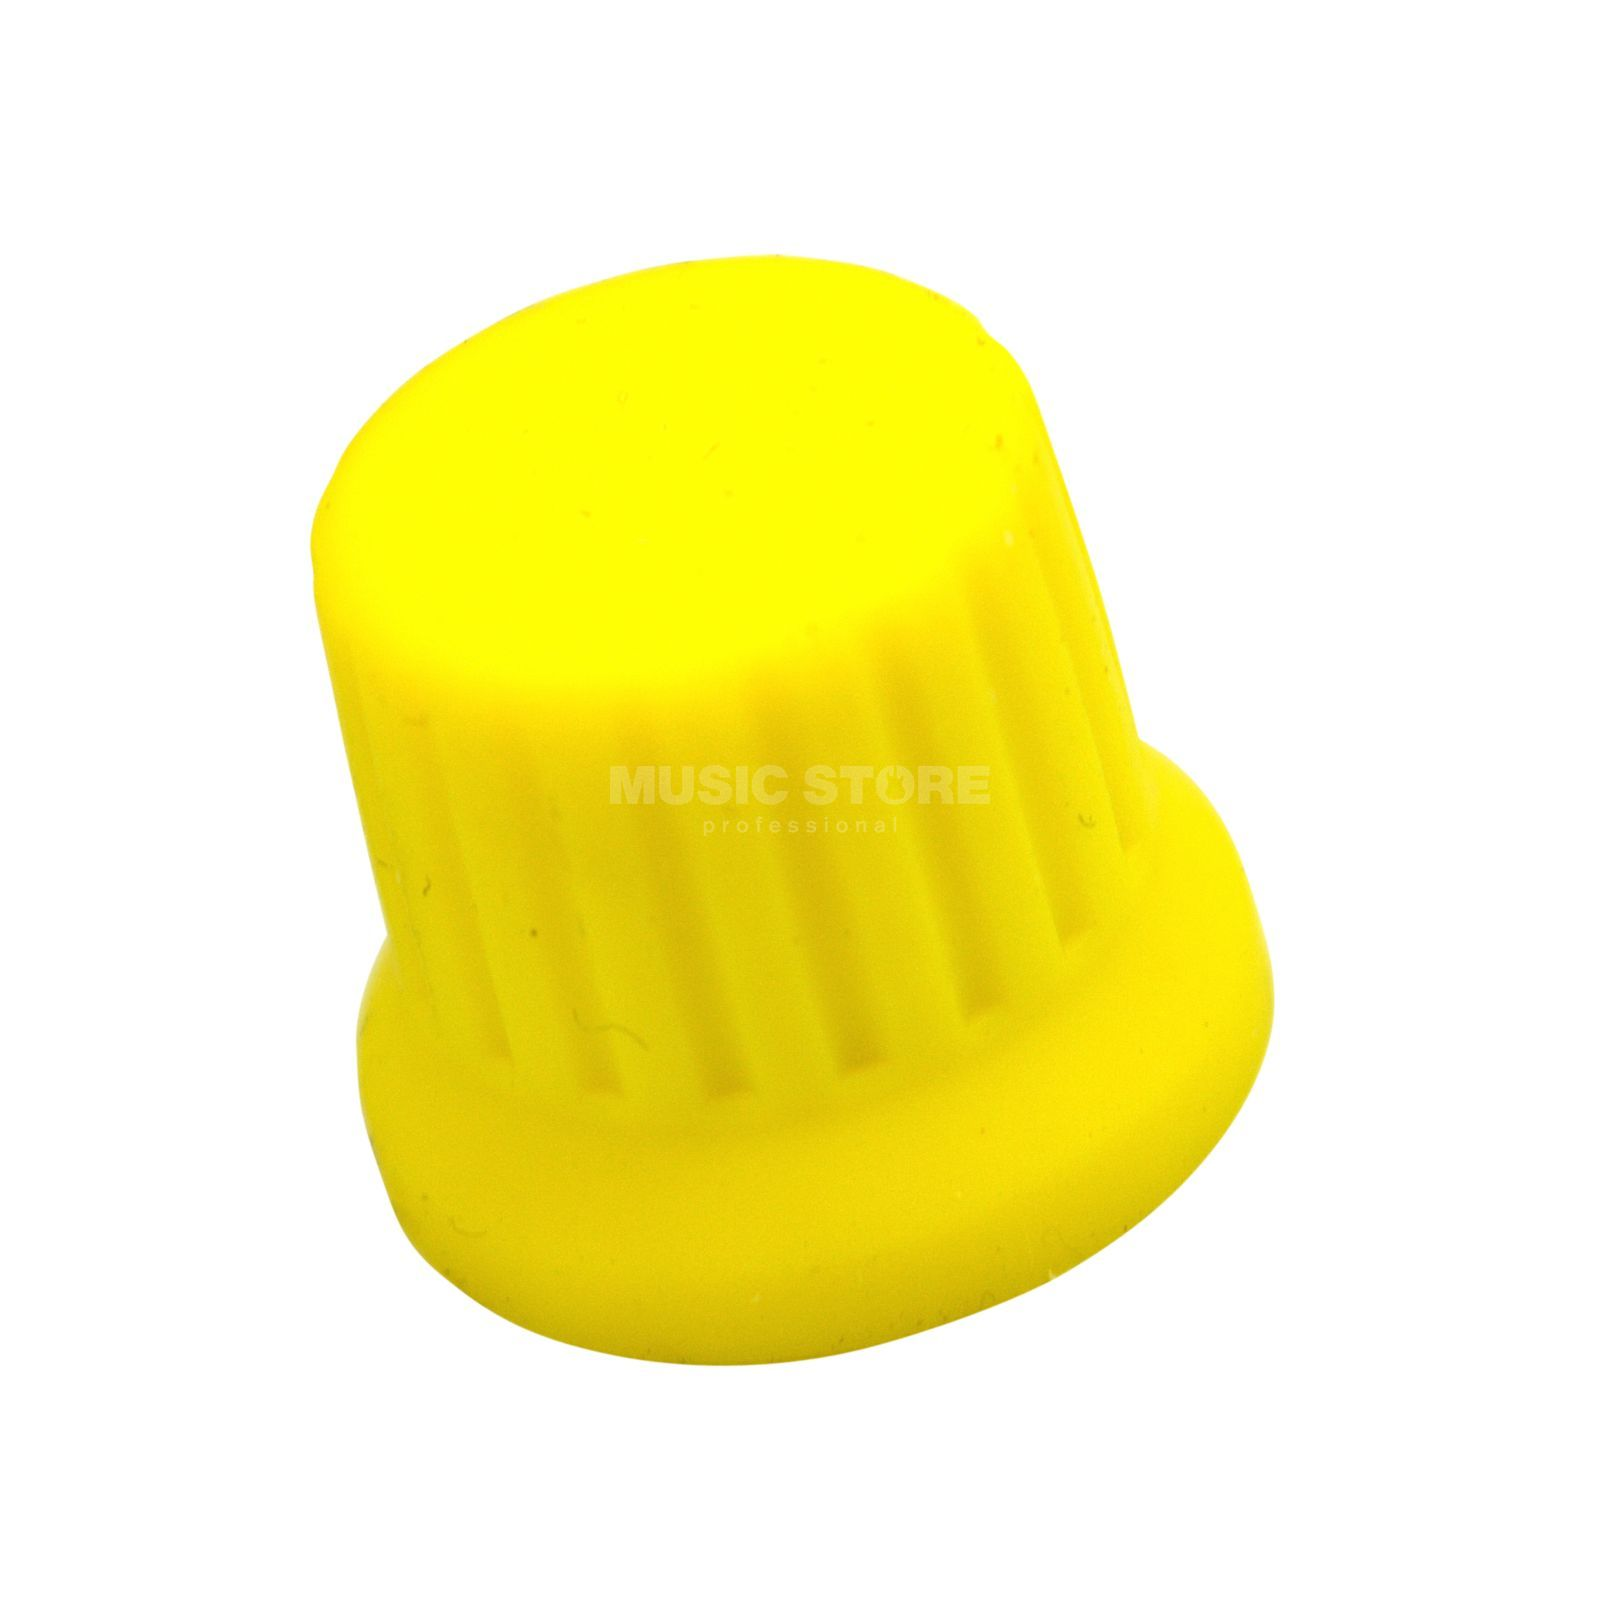 DJ TECHTOOLS Chroma Caps Encor Knob yellow Produktbillede